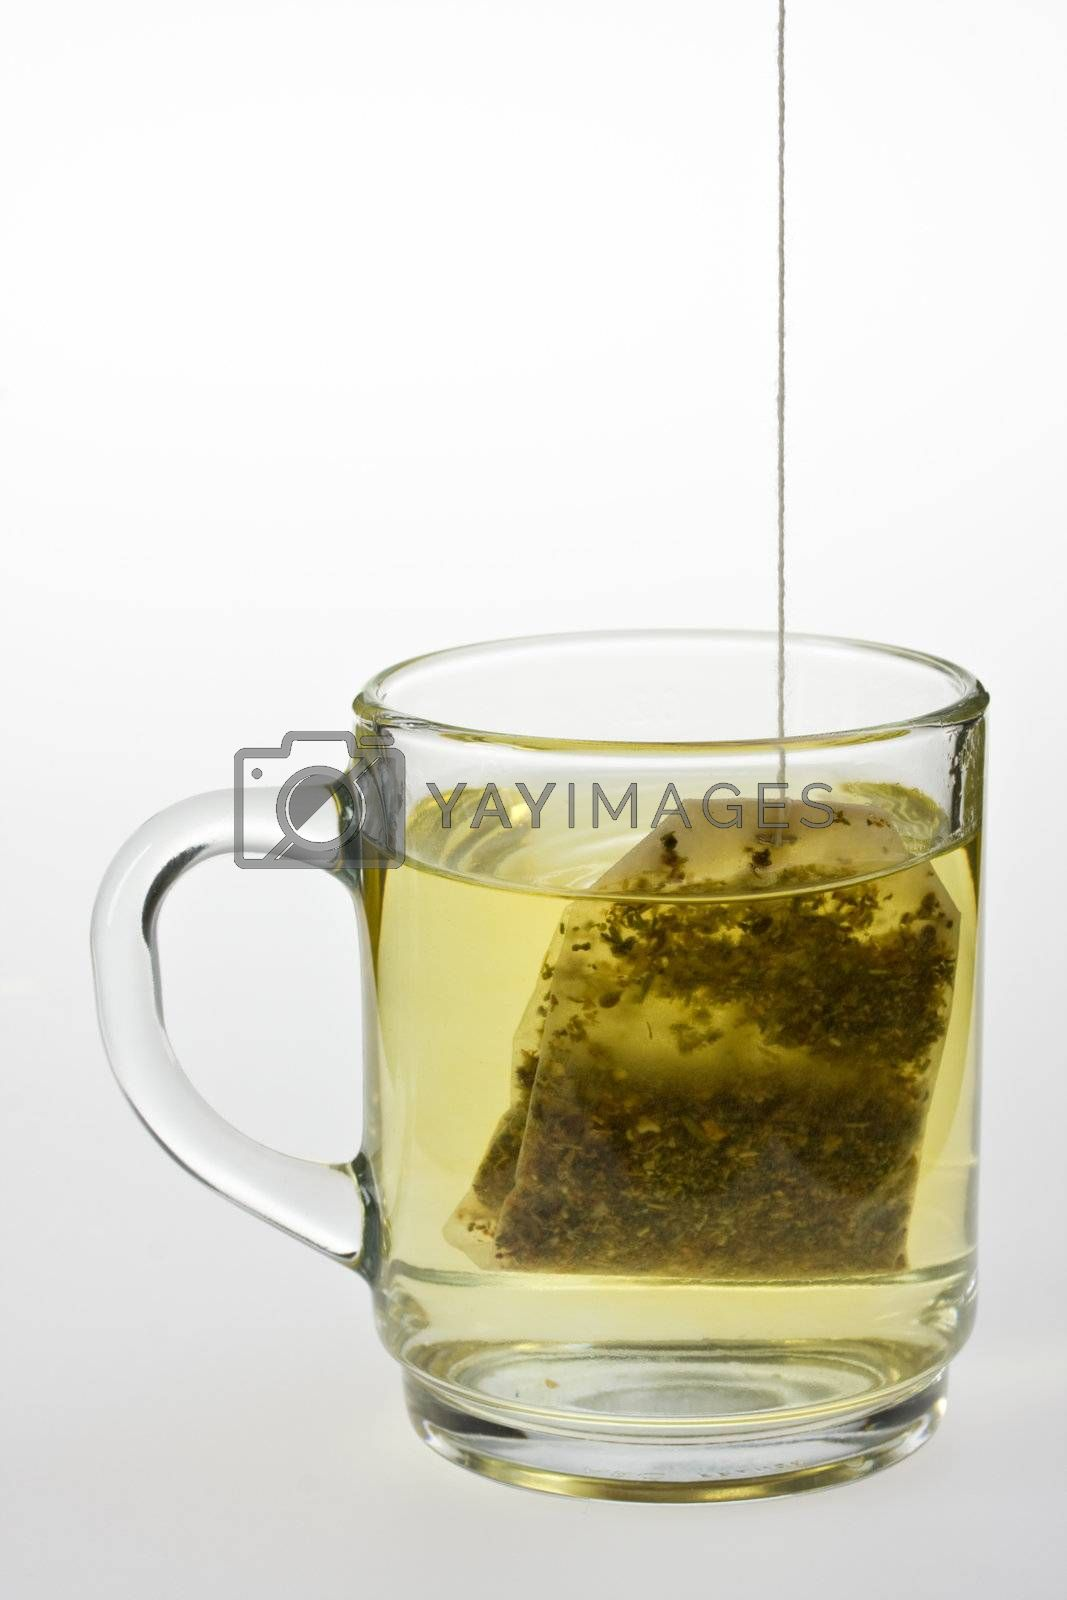 Royalty free image of glass of herbal tea isolated on white by bernjuer